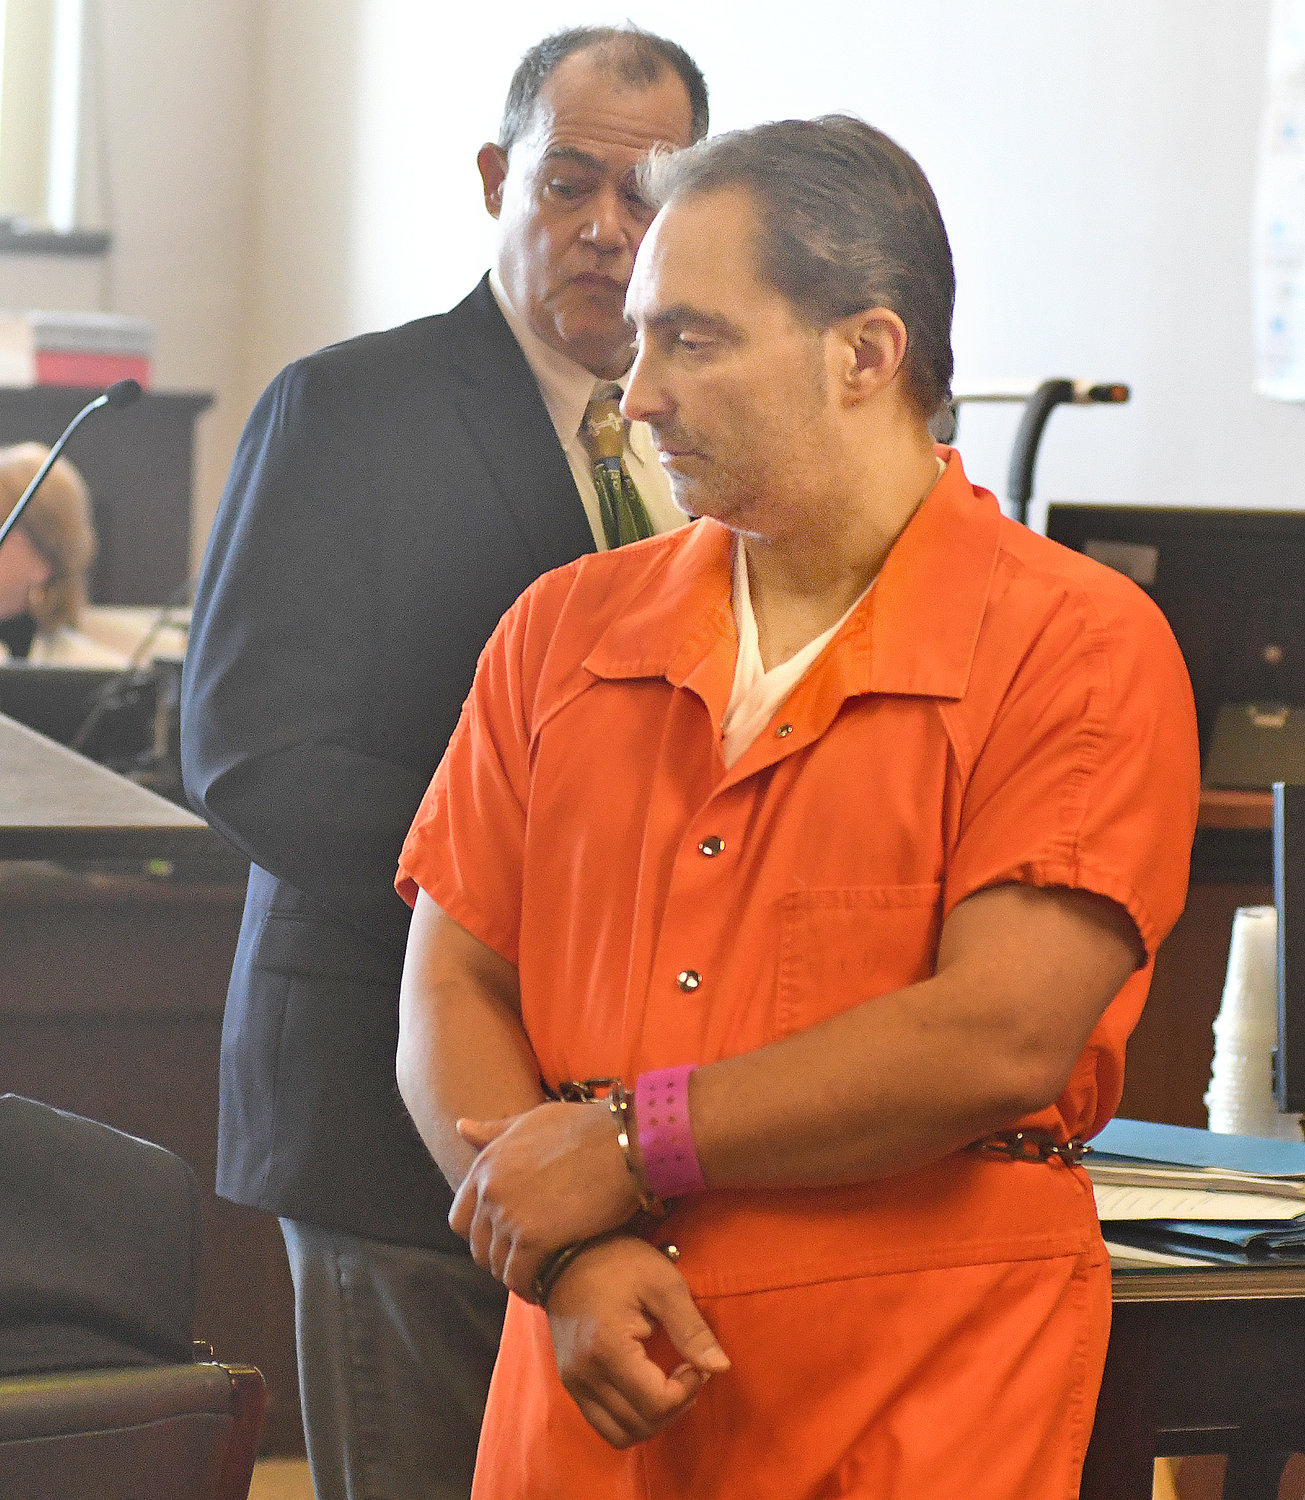 MAINTAINING HIS INNOCENCE — Jason P. D'Avolio enters County Court in Utica today. A not guilty plea was entered on his behalf in the death of his wife Kerrilee D'Avolio. He is charged with one count each of second-degree murder and concealment of a human corpse. In the background is Leland D. McCormac III, chief trial counsel for the county Public Defender's Office.